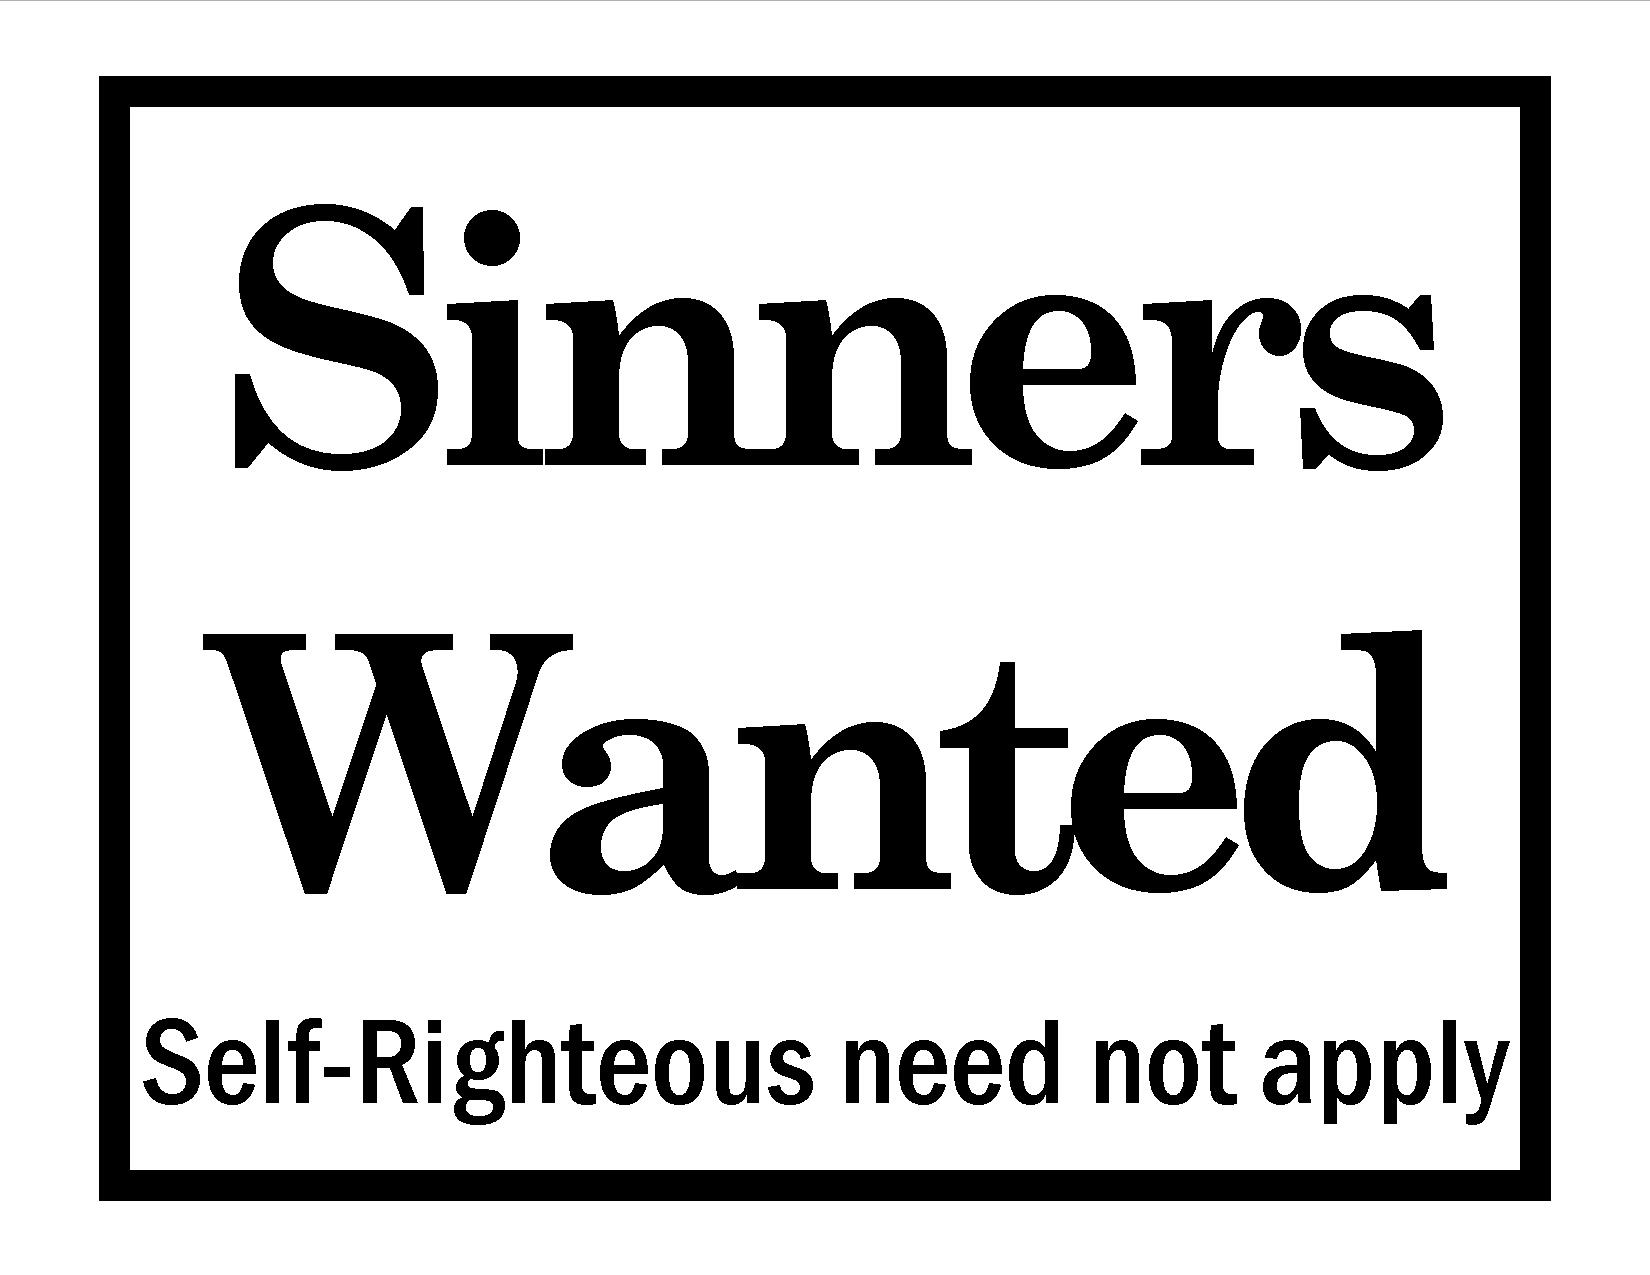 Self-righteous need not apply